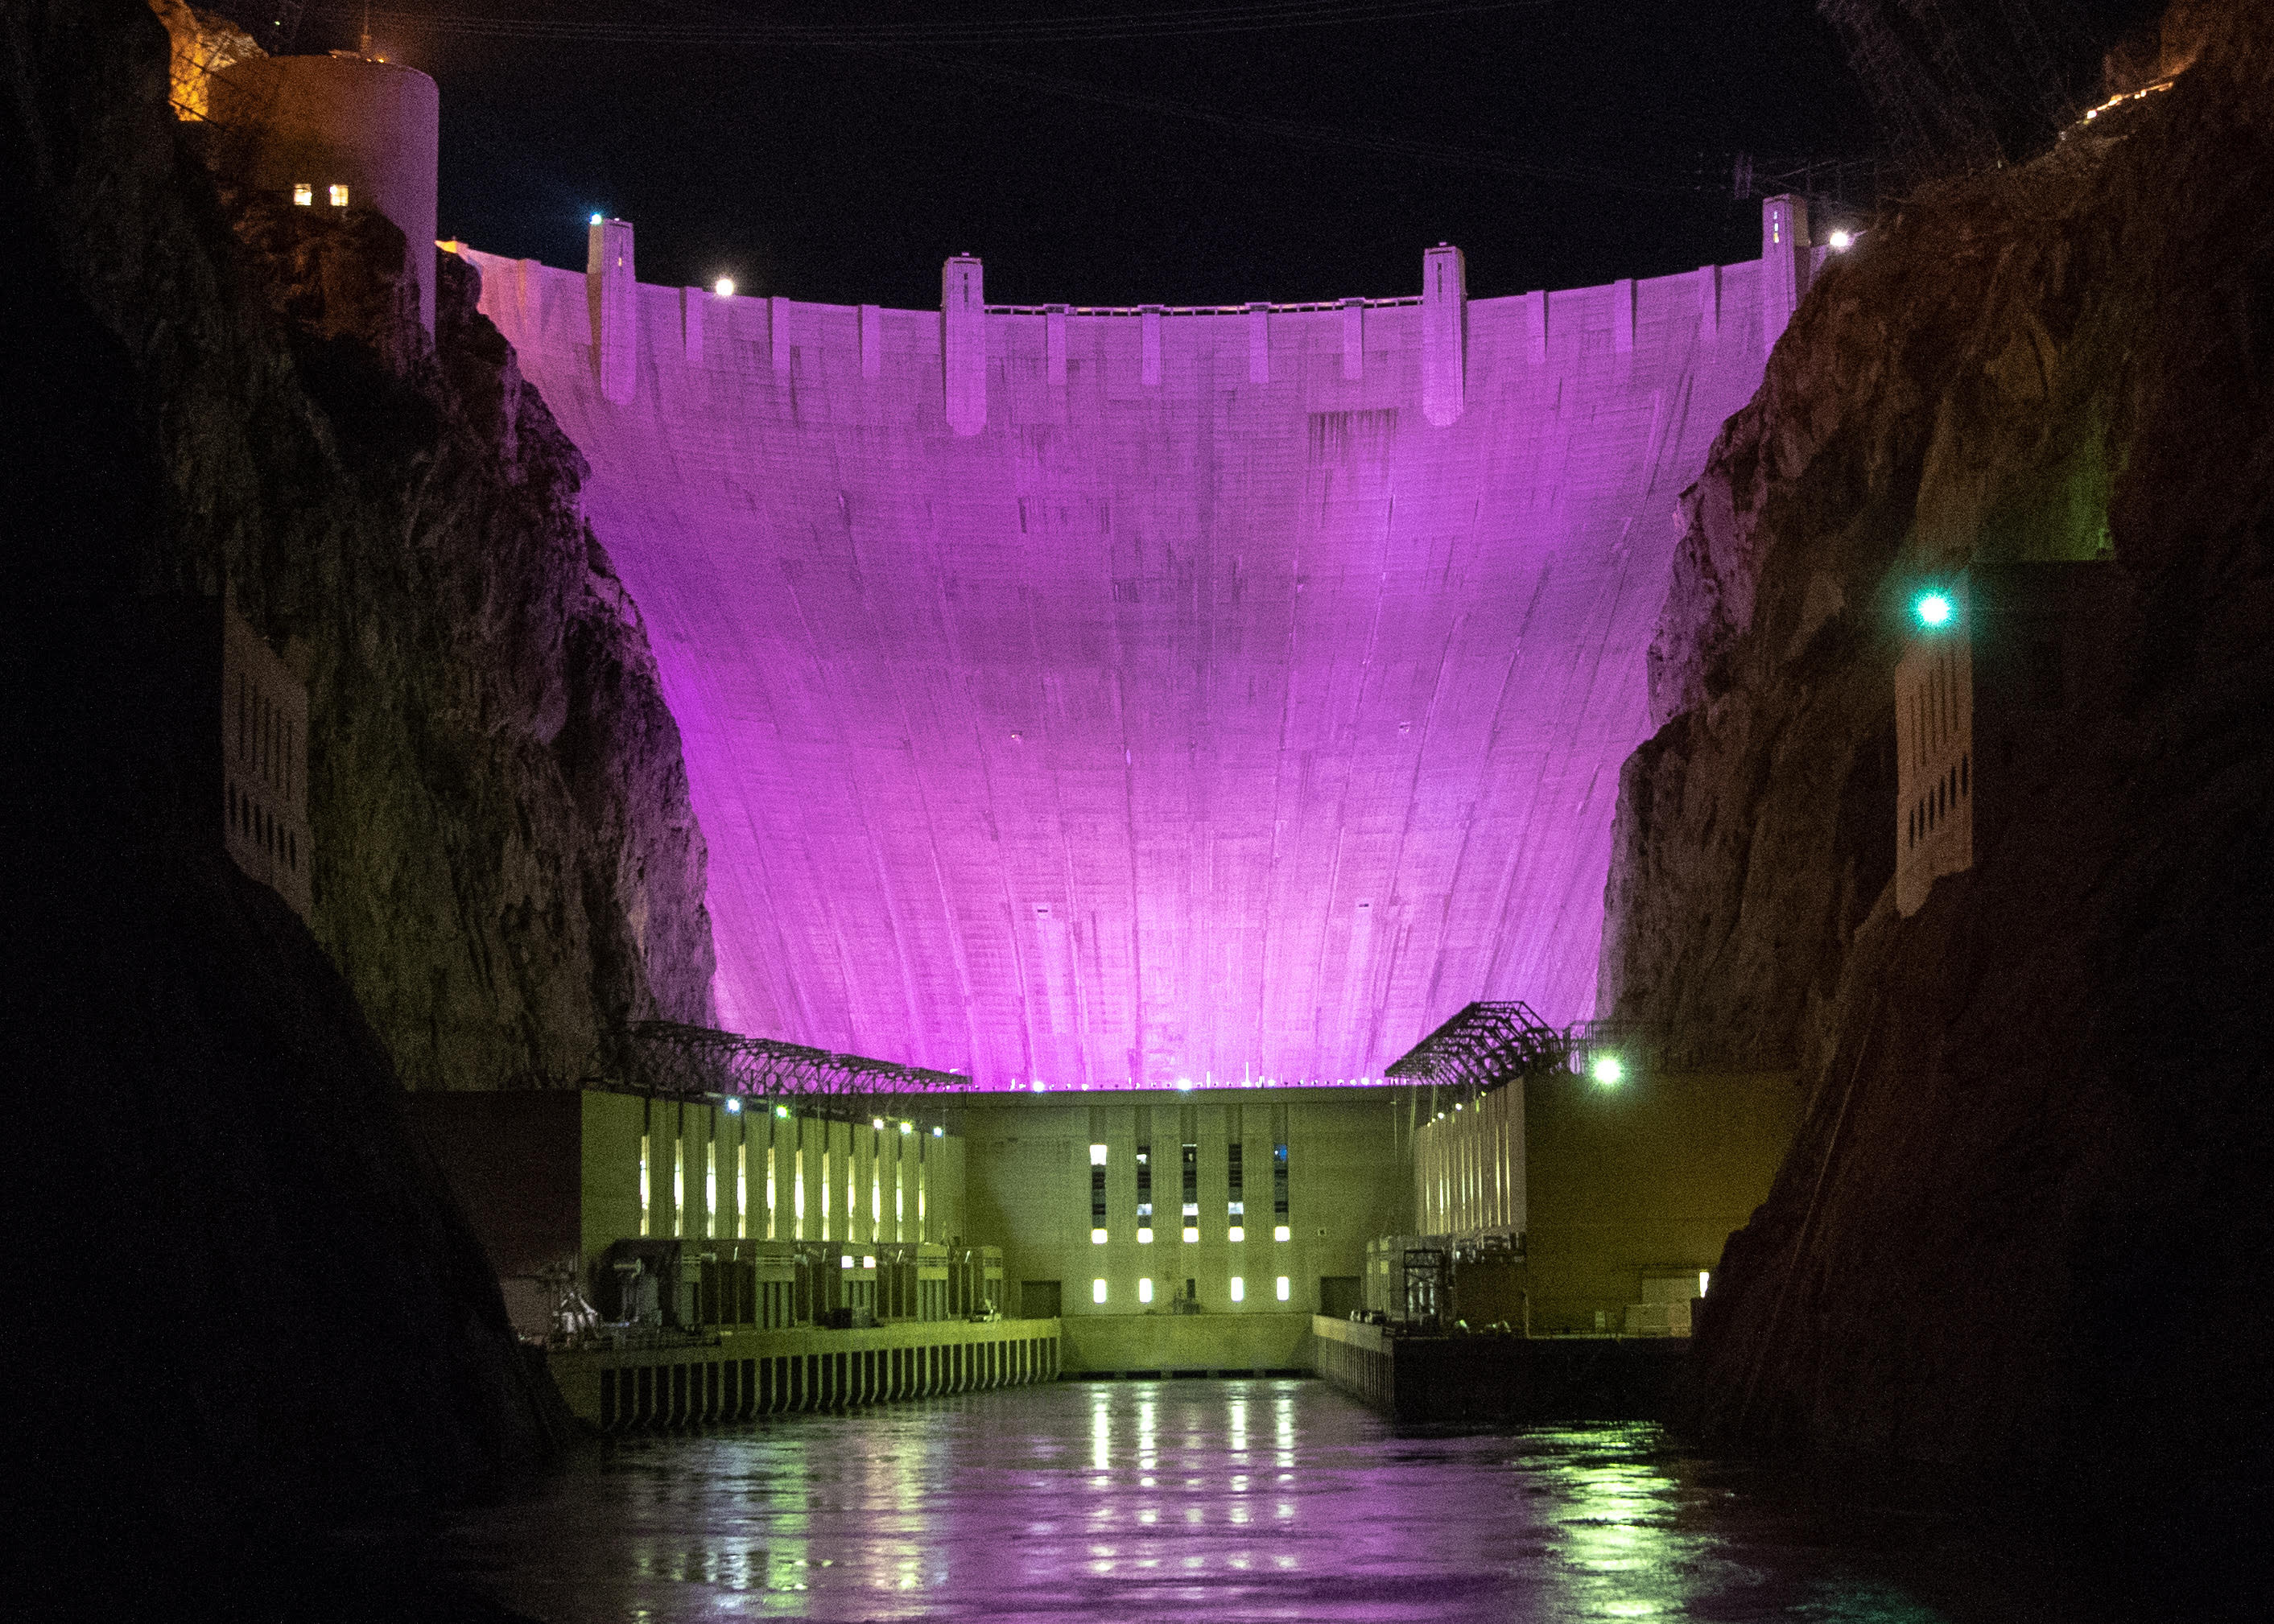 Hoover Dam was lit purple Monday night to raise awareness about the impacts of domestic violence.